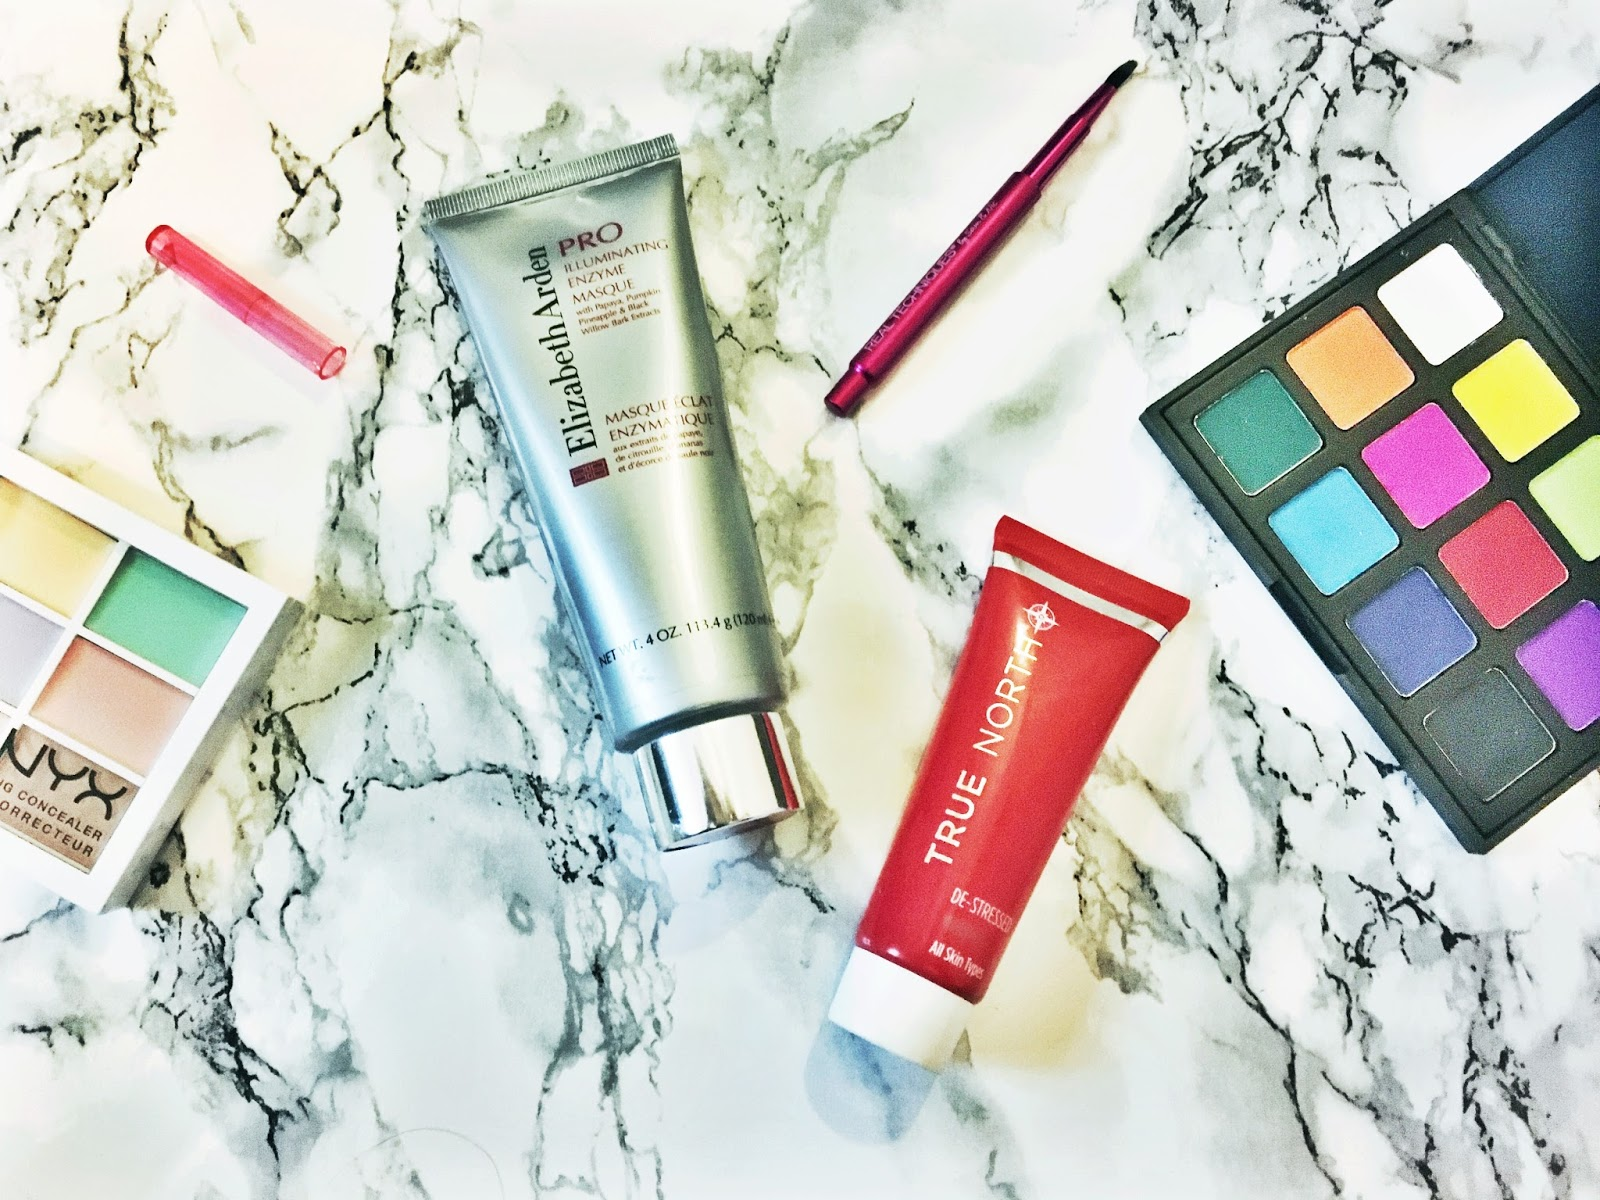 True North Destress Mask, Elizabeth Arden PRO Illuminating Enzyme Masque